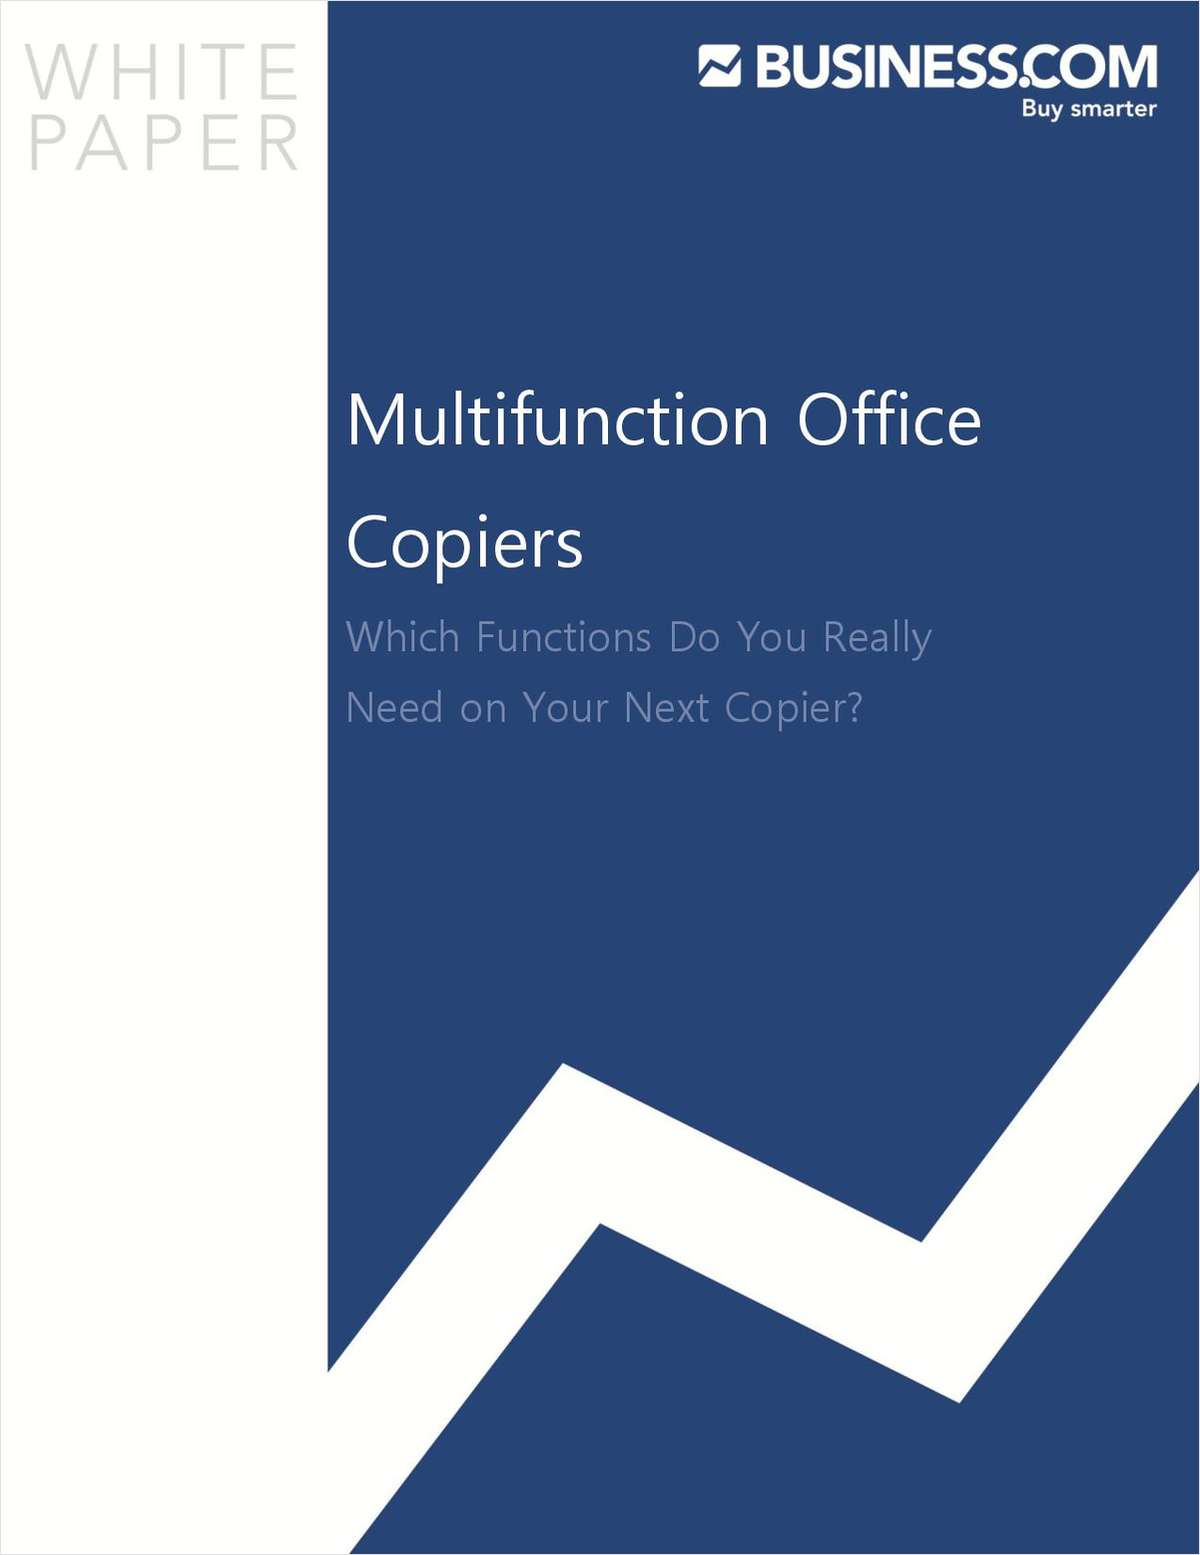 Best Practices For Choosing the Right Copier With Functions You Really Need